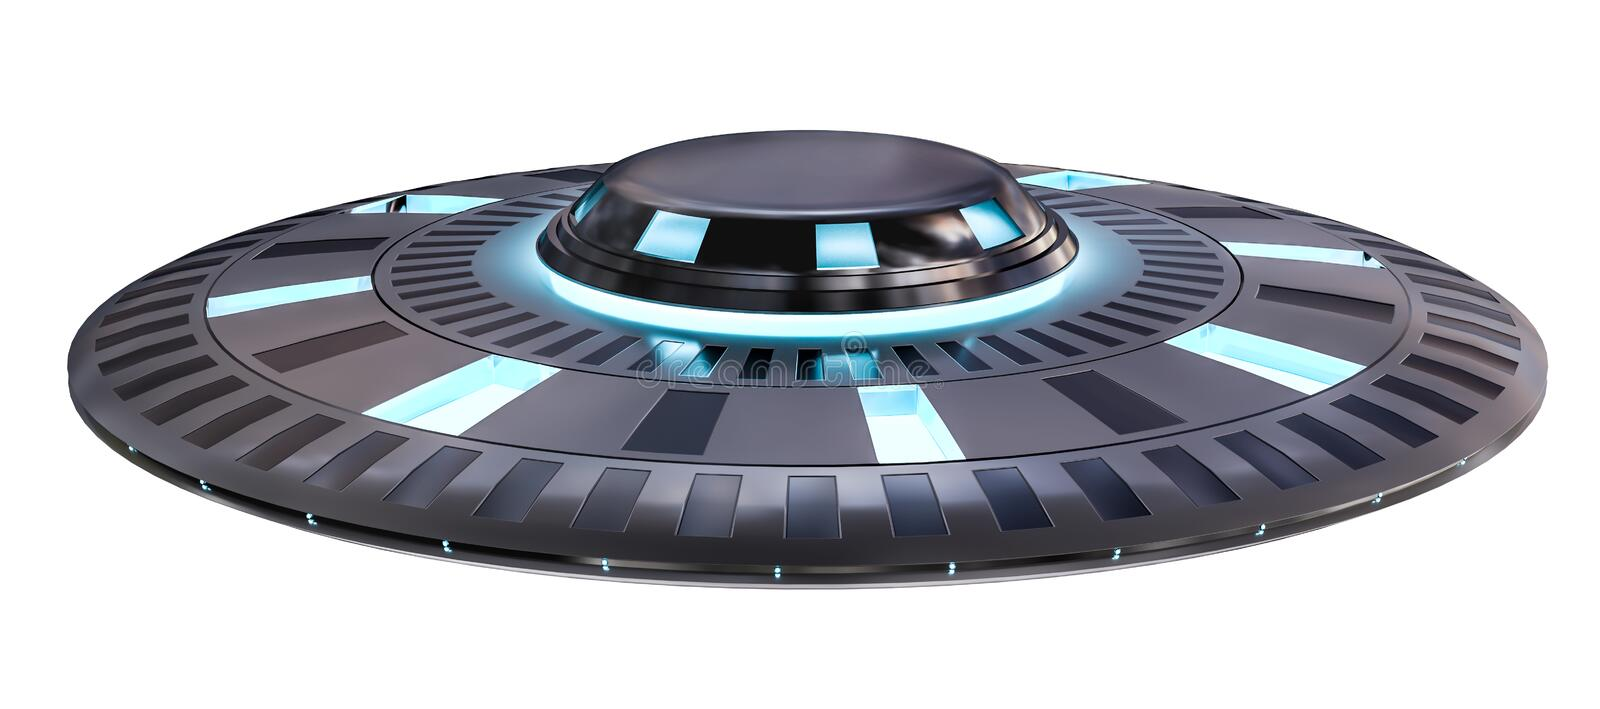 Vintage UFO isolated on white background 3D rendering royalty free illustration